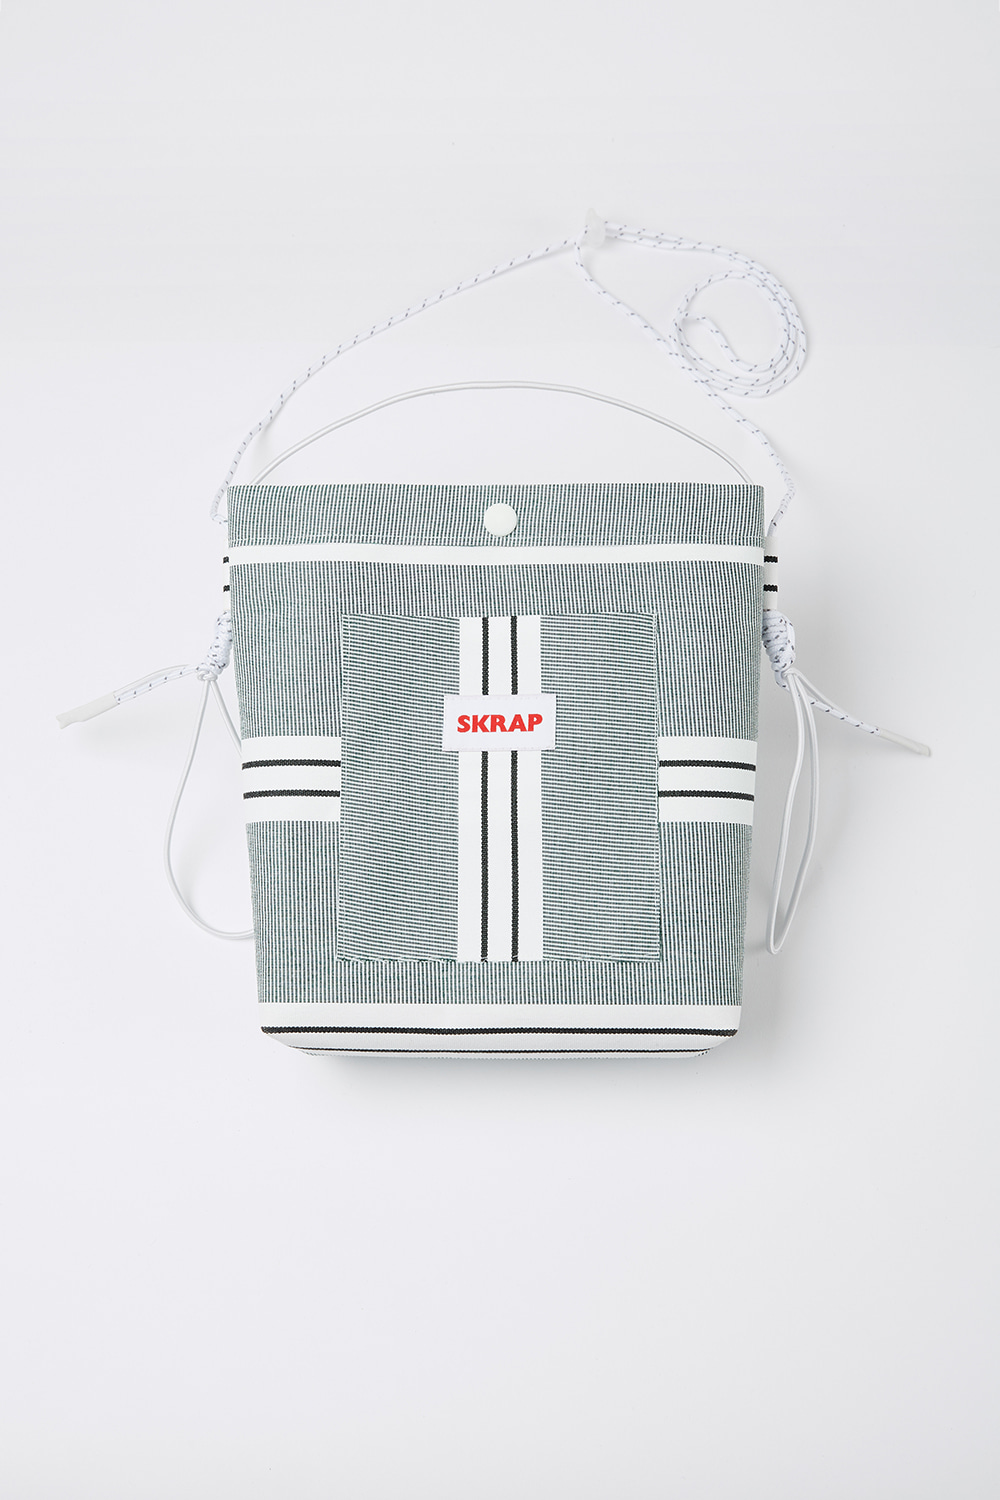 [스크랩] AWNING sacoche bag Green stripe